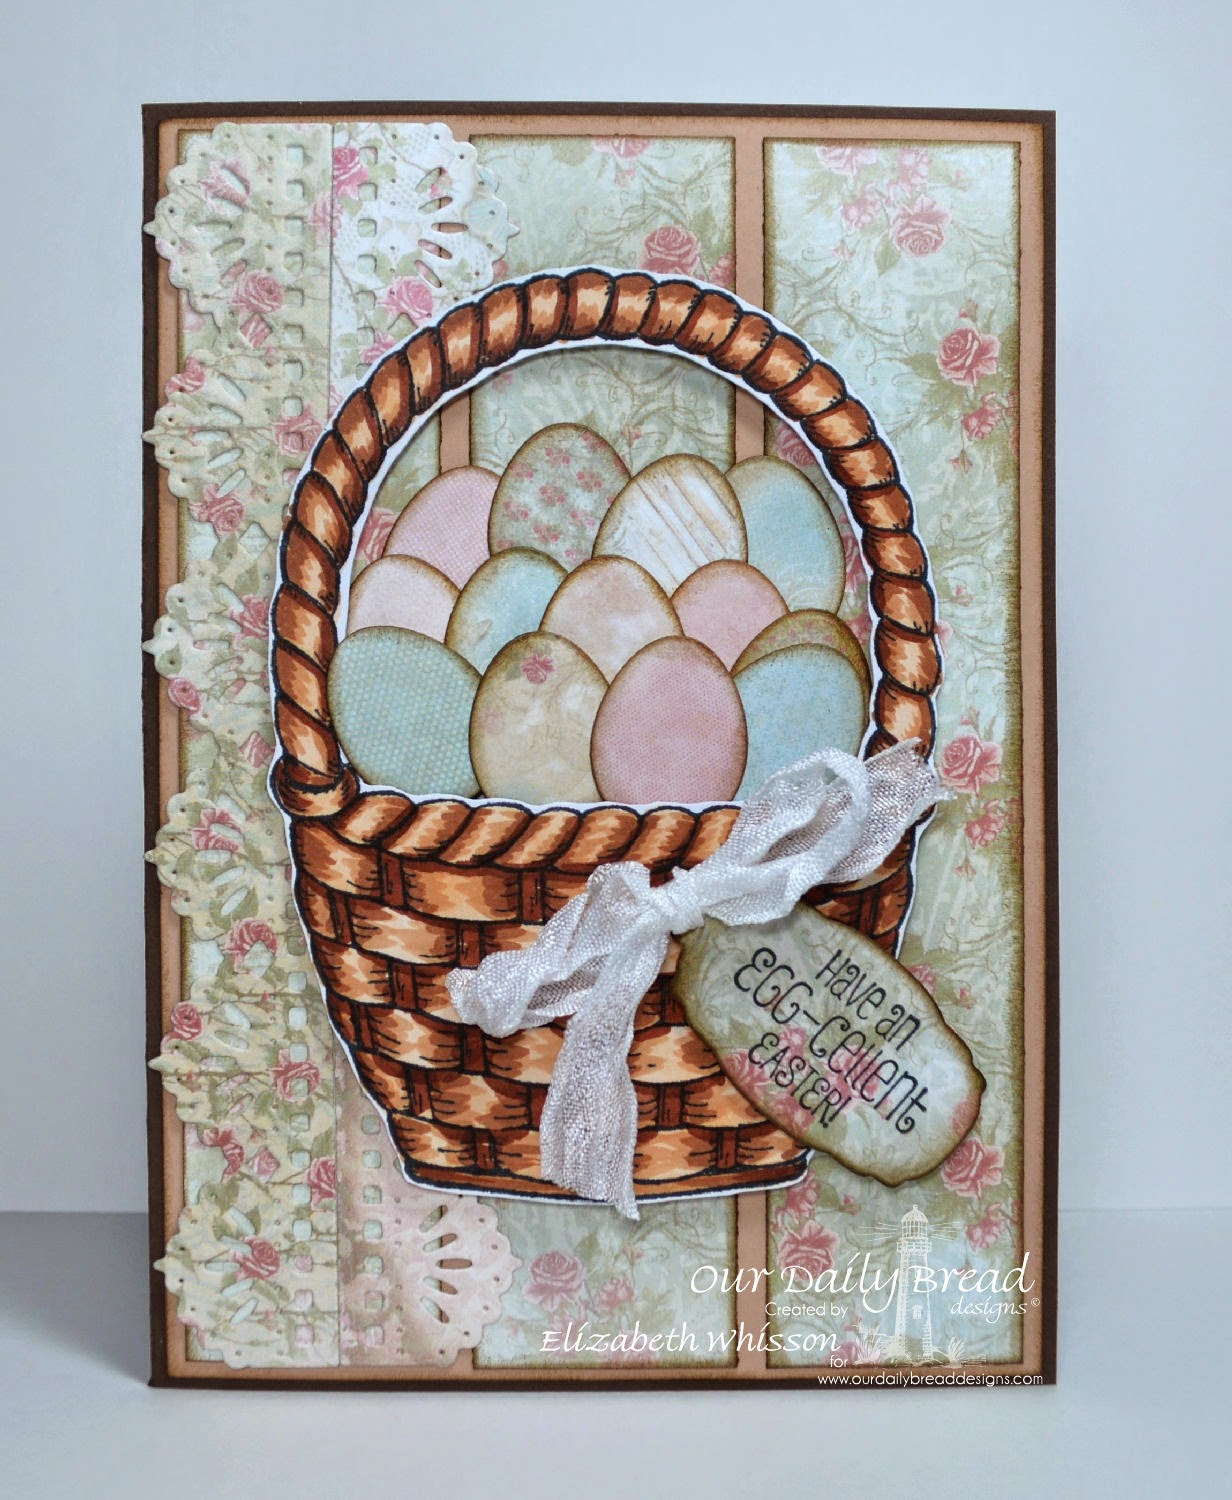 Elizabeth Whisson, Our Daily Bread Designs, ODBD, ODBDDT, handmade card, Copics, Basket of Blessings, Easter, eggs, beautiful borders dies, Mini Tags dies, ODBD Shabby Rose Paper Collection